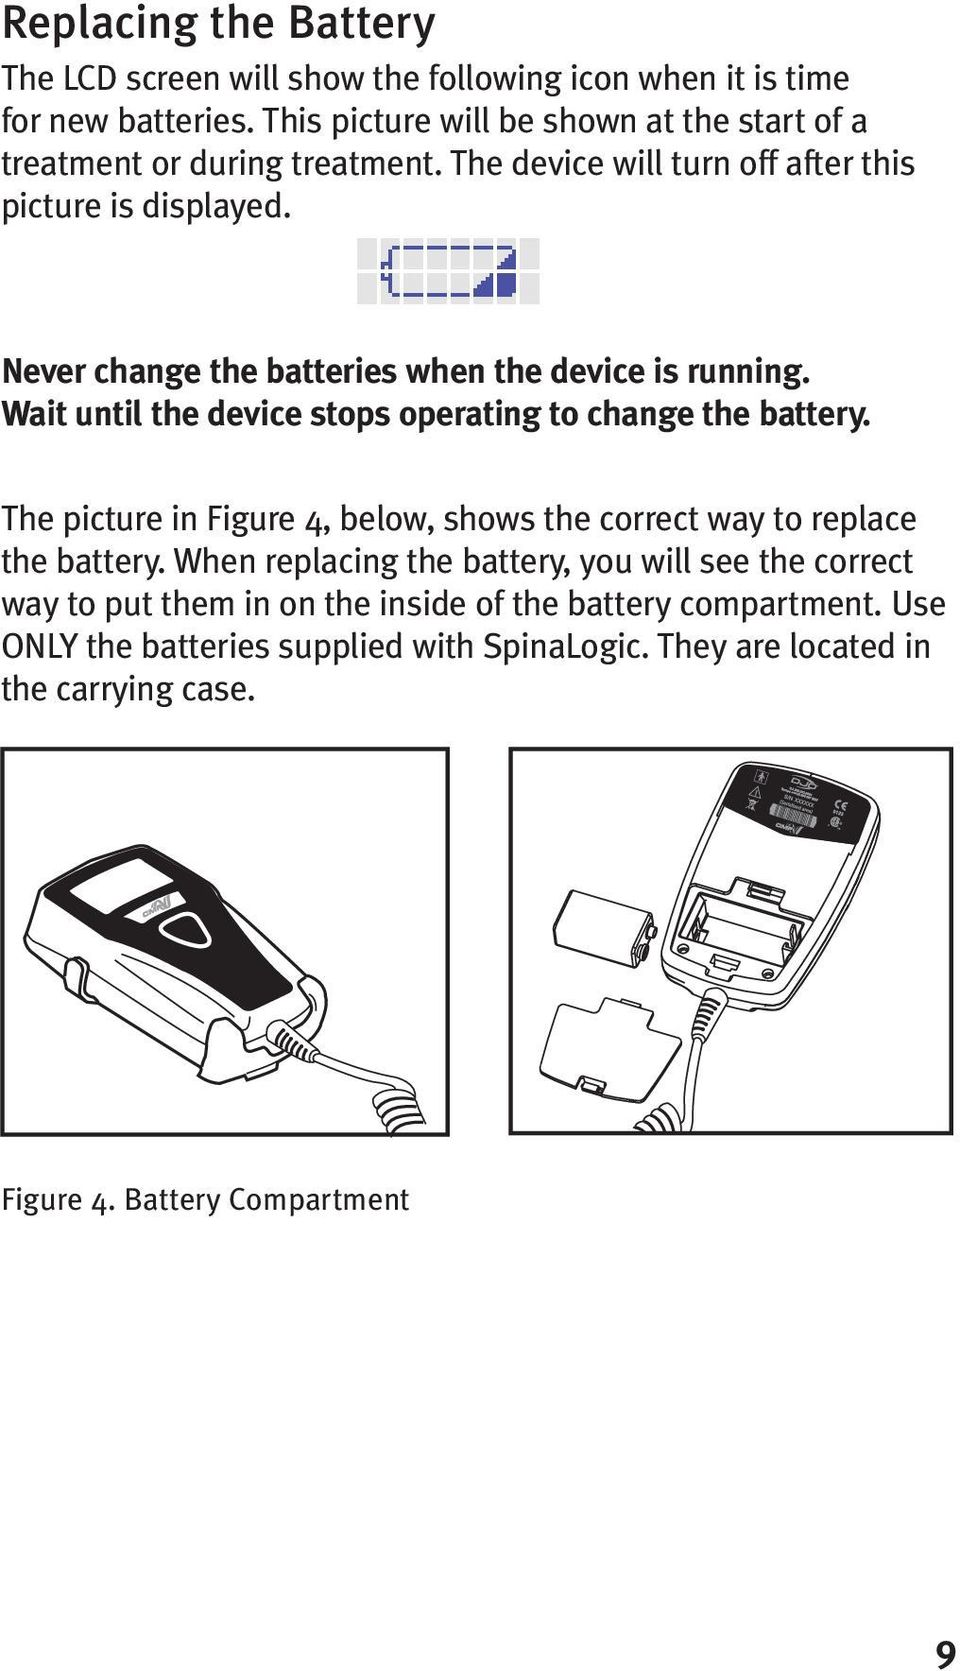 Never change the batteries when the device is running. Wait until the device stops operating to change the battery.